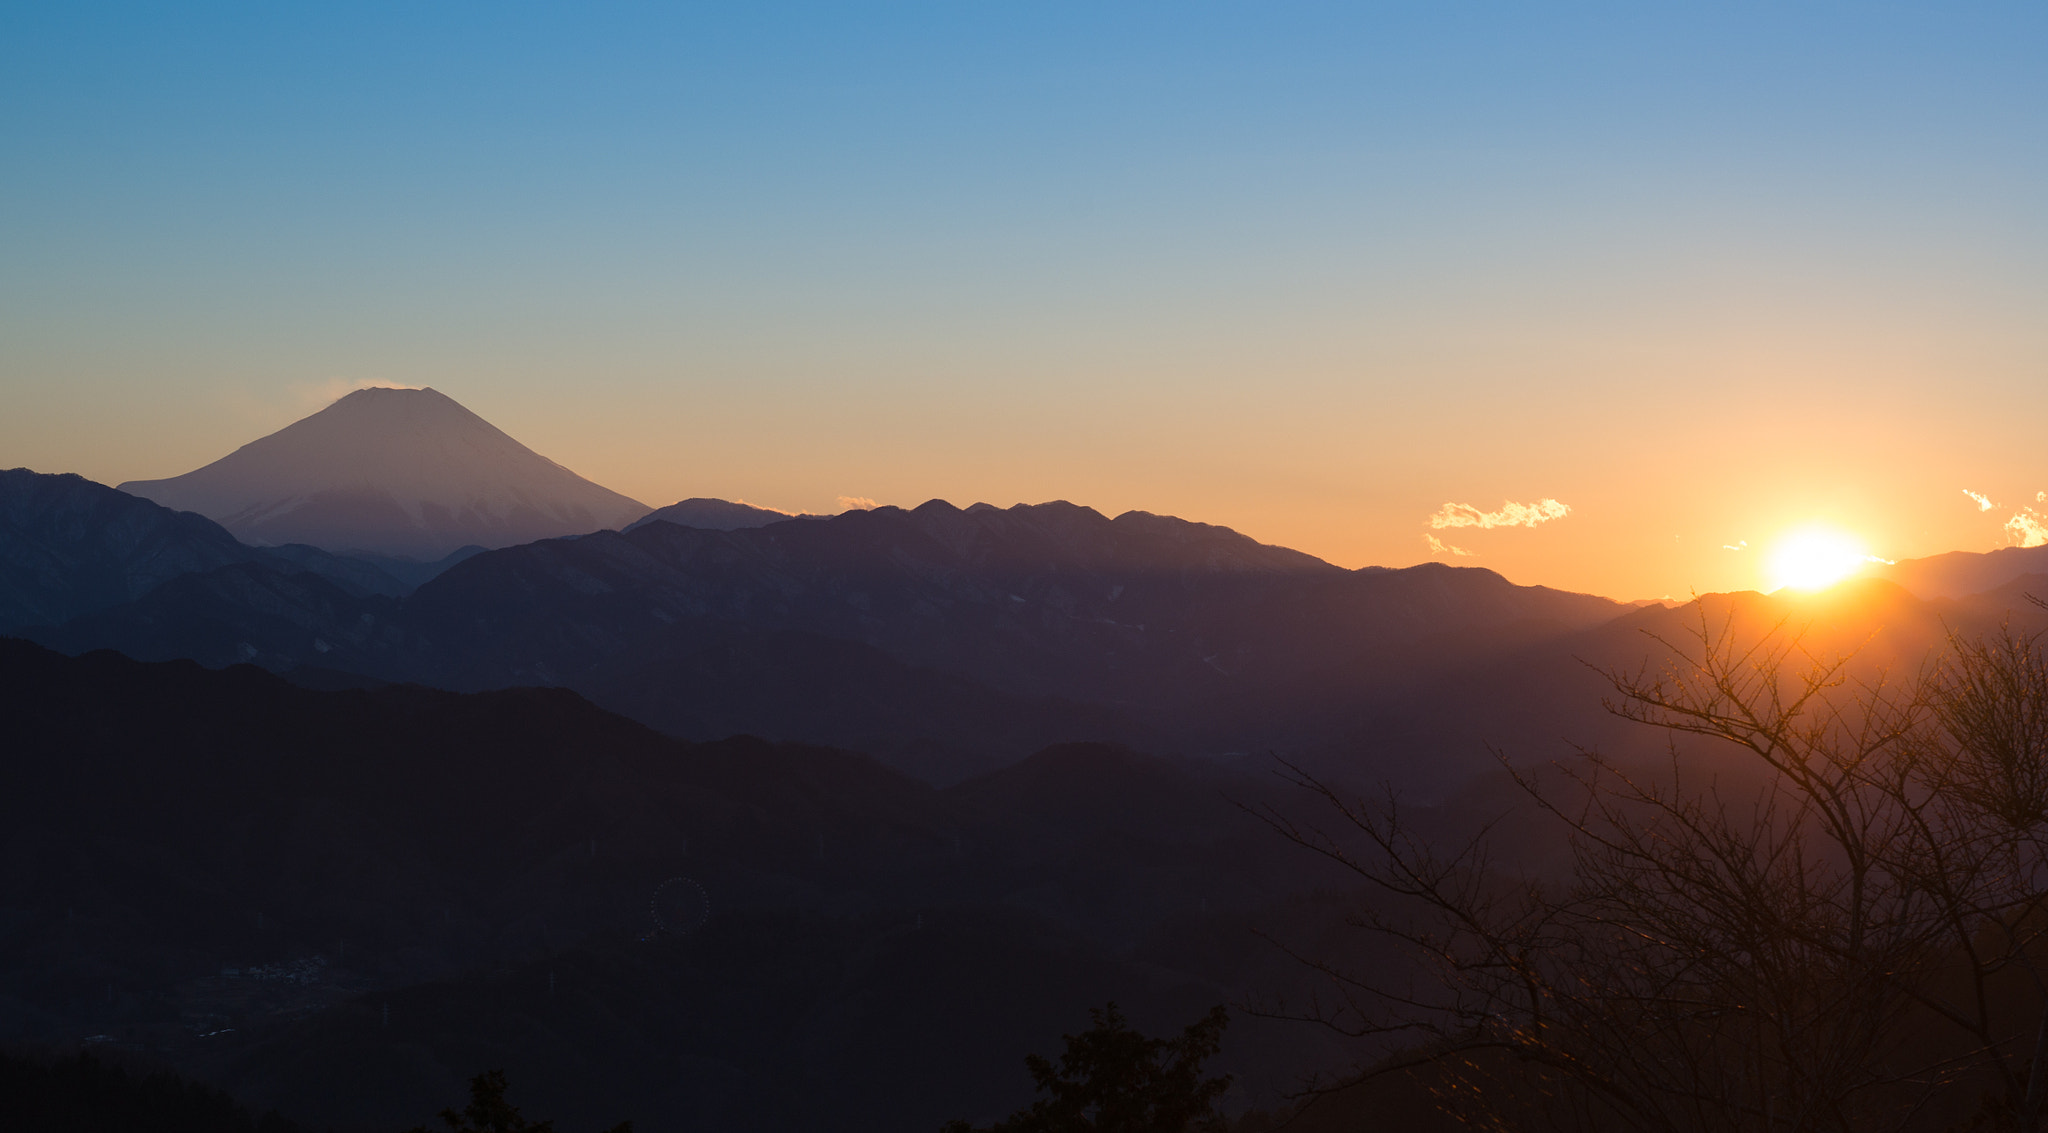 Photograph Mt. Fuji at Sunset by Ben Torode on 500px